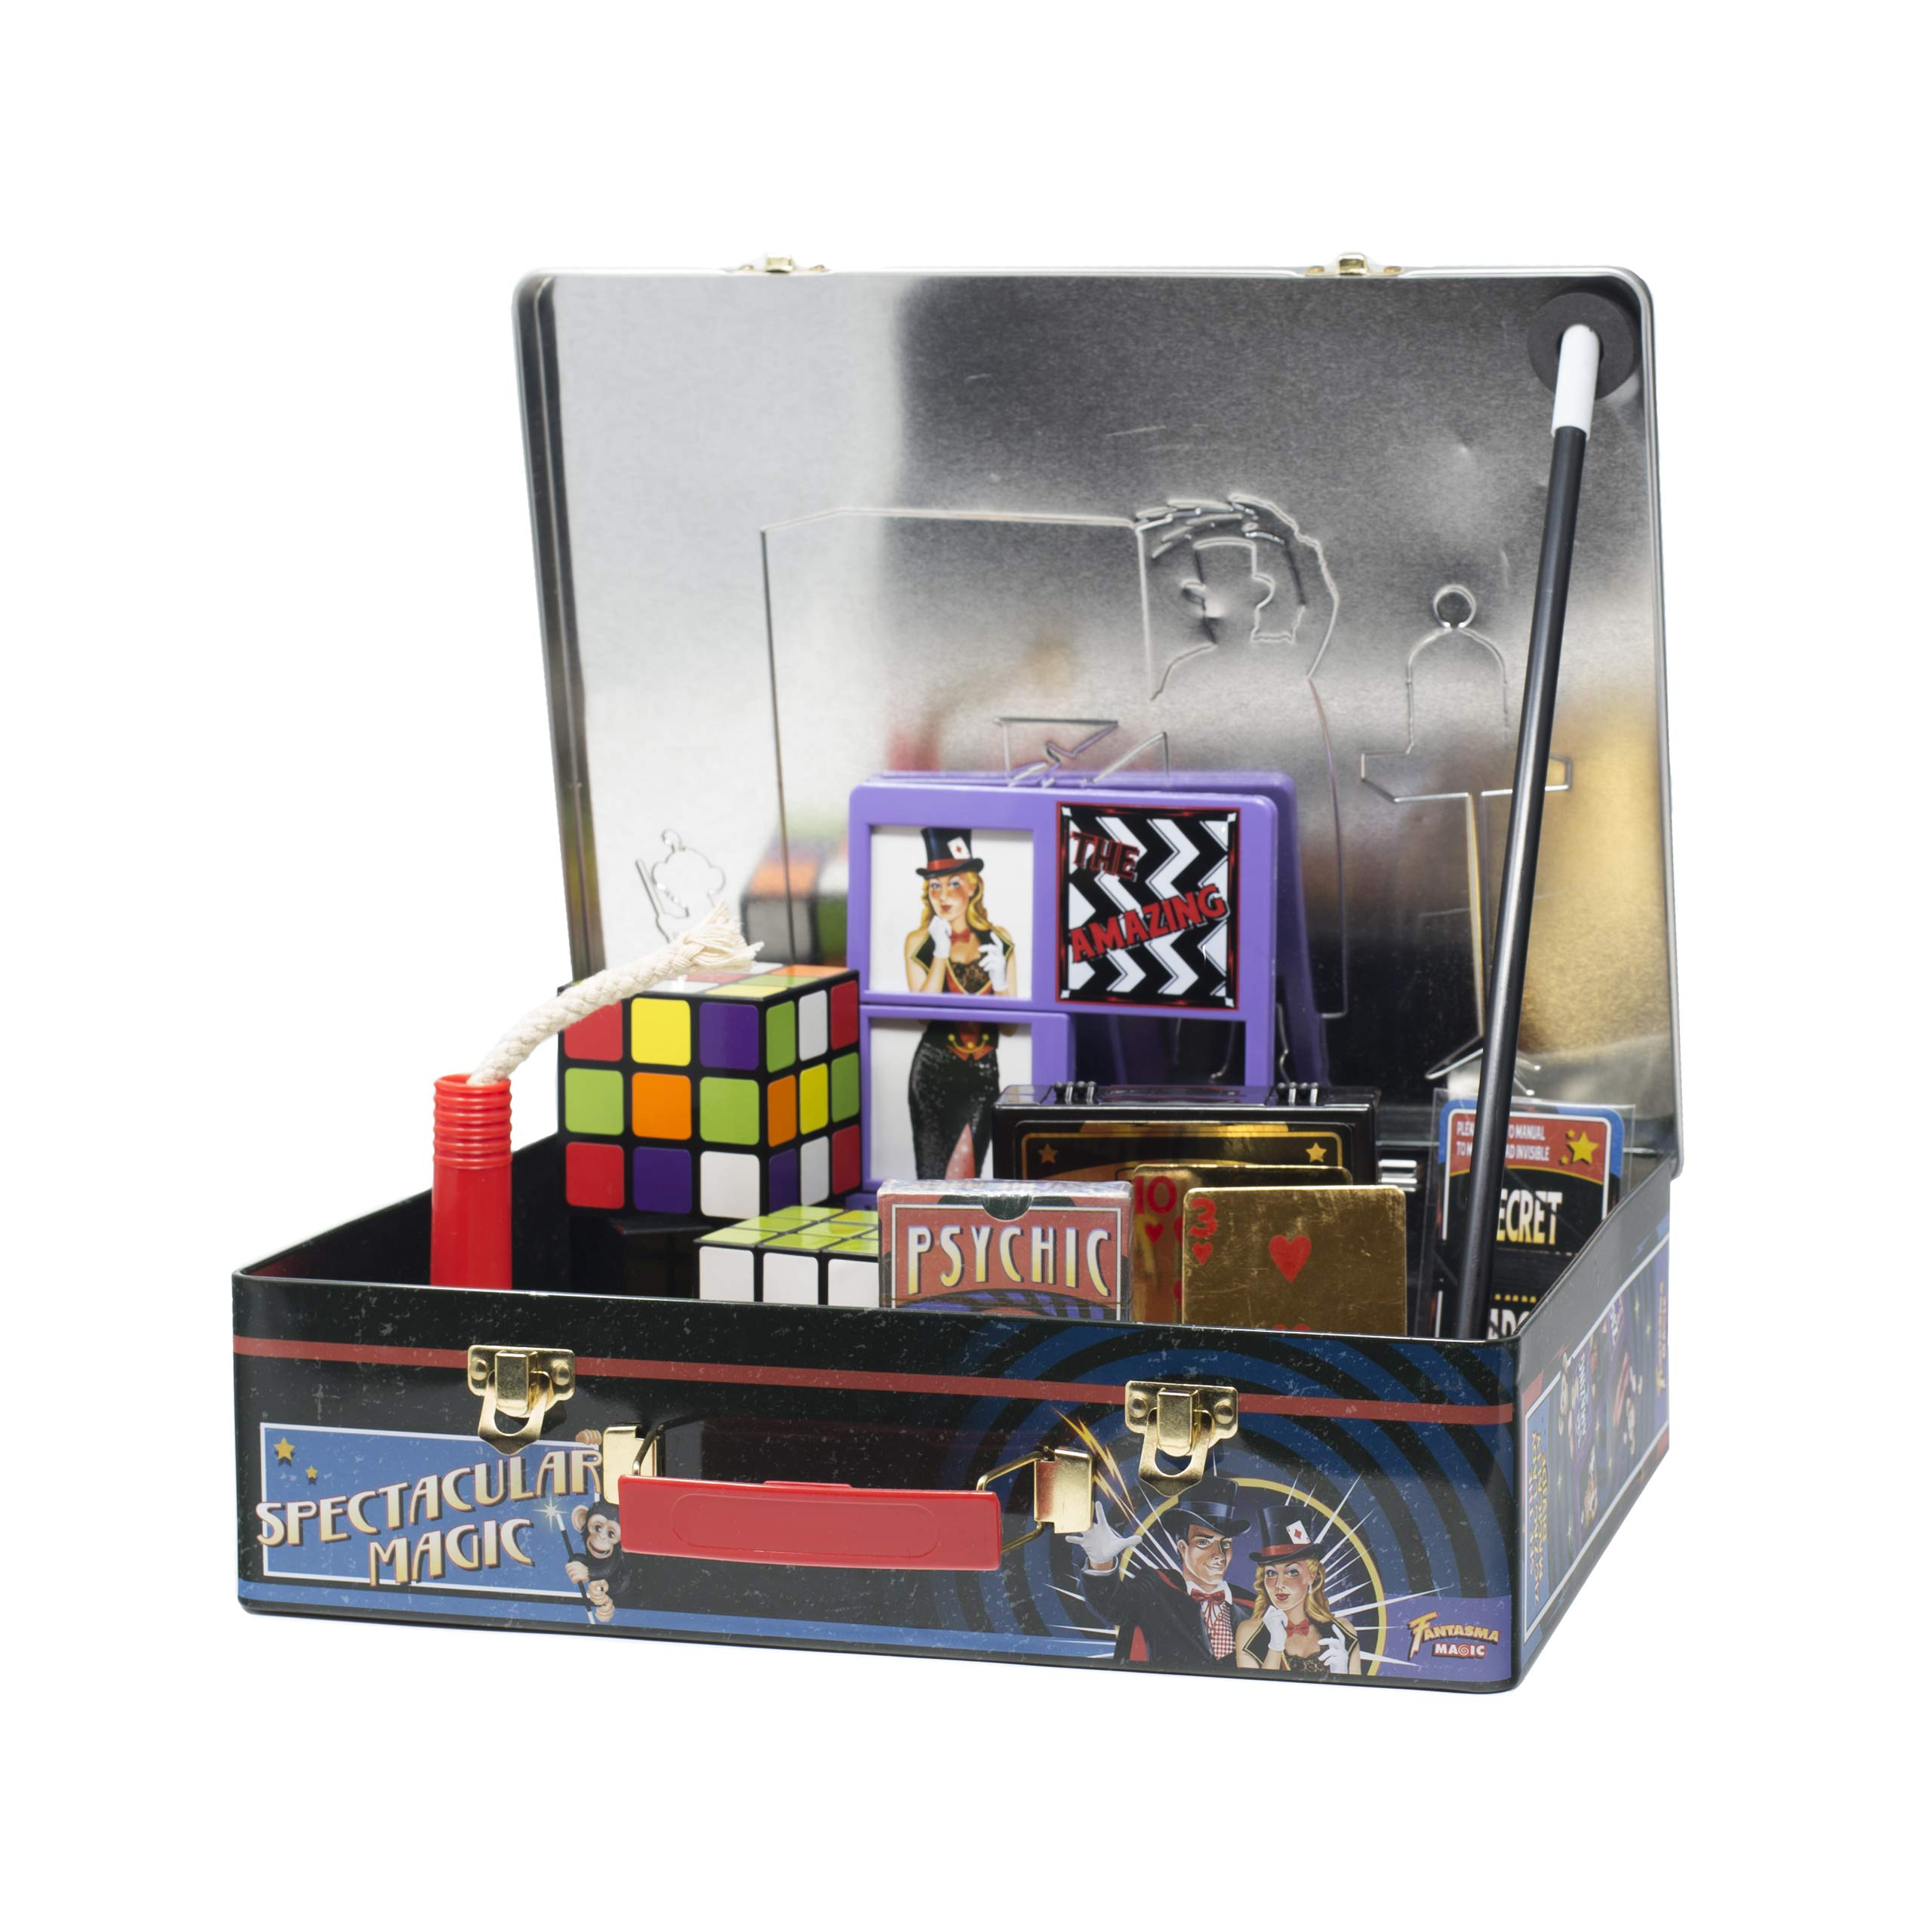 Fantasma Spectacular Magic Box Set for Kids - Magic Kit and Card Trick - Learn 135 Magic Tricks - Great for Boys and Girls 7 Years and Older        by Fantasma (Image #2)